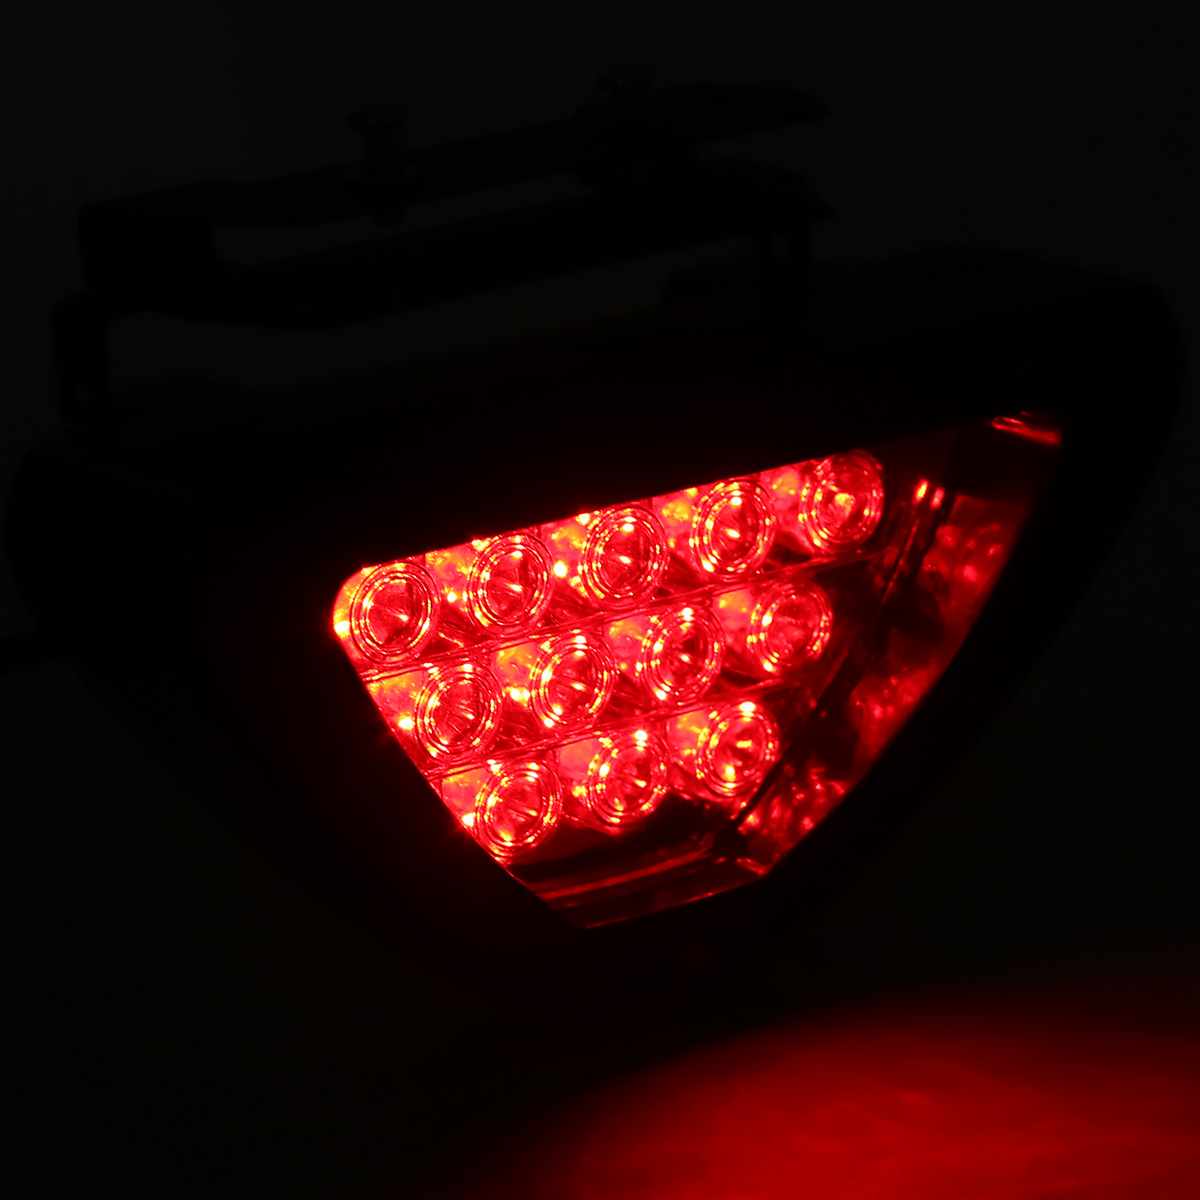 Image 3 - For Car Truck Brake Lights Universal F1 Style 12 LED Red Rear Tail Third Brake Stop Light Safety Signal Lamp-in Signal Lamp from Automobiles & Motorcycles